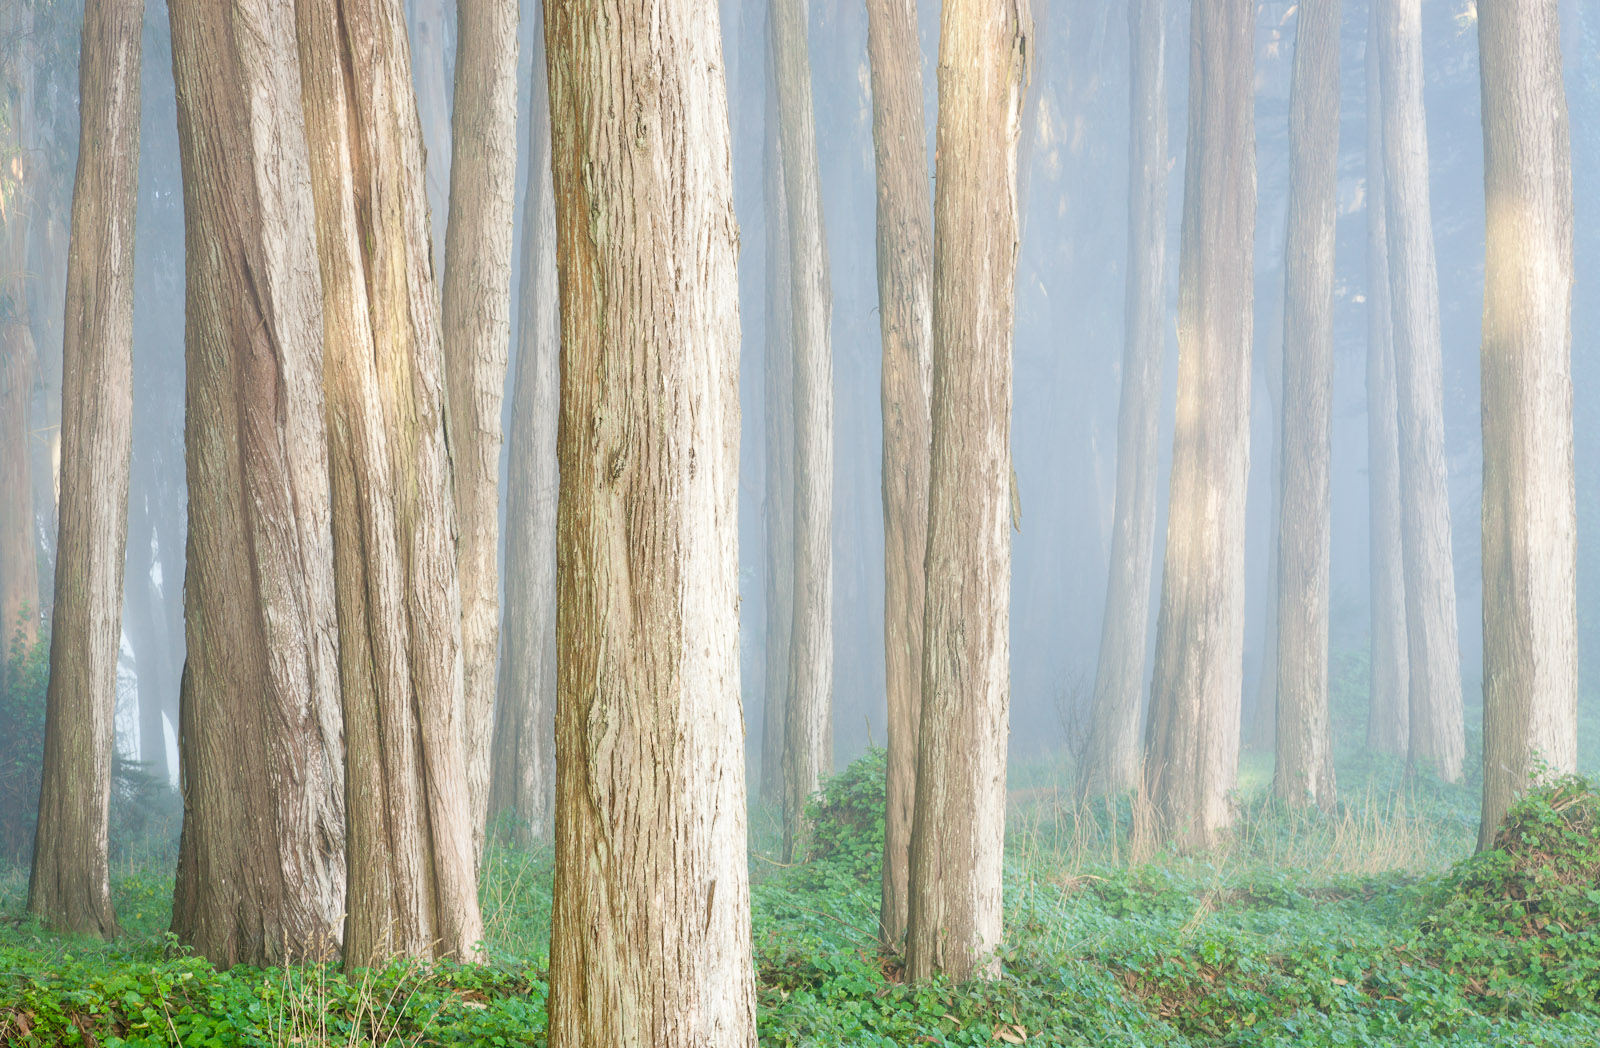 Cypress trees colored by the early morning light and fog.